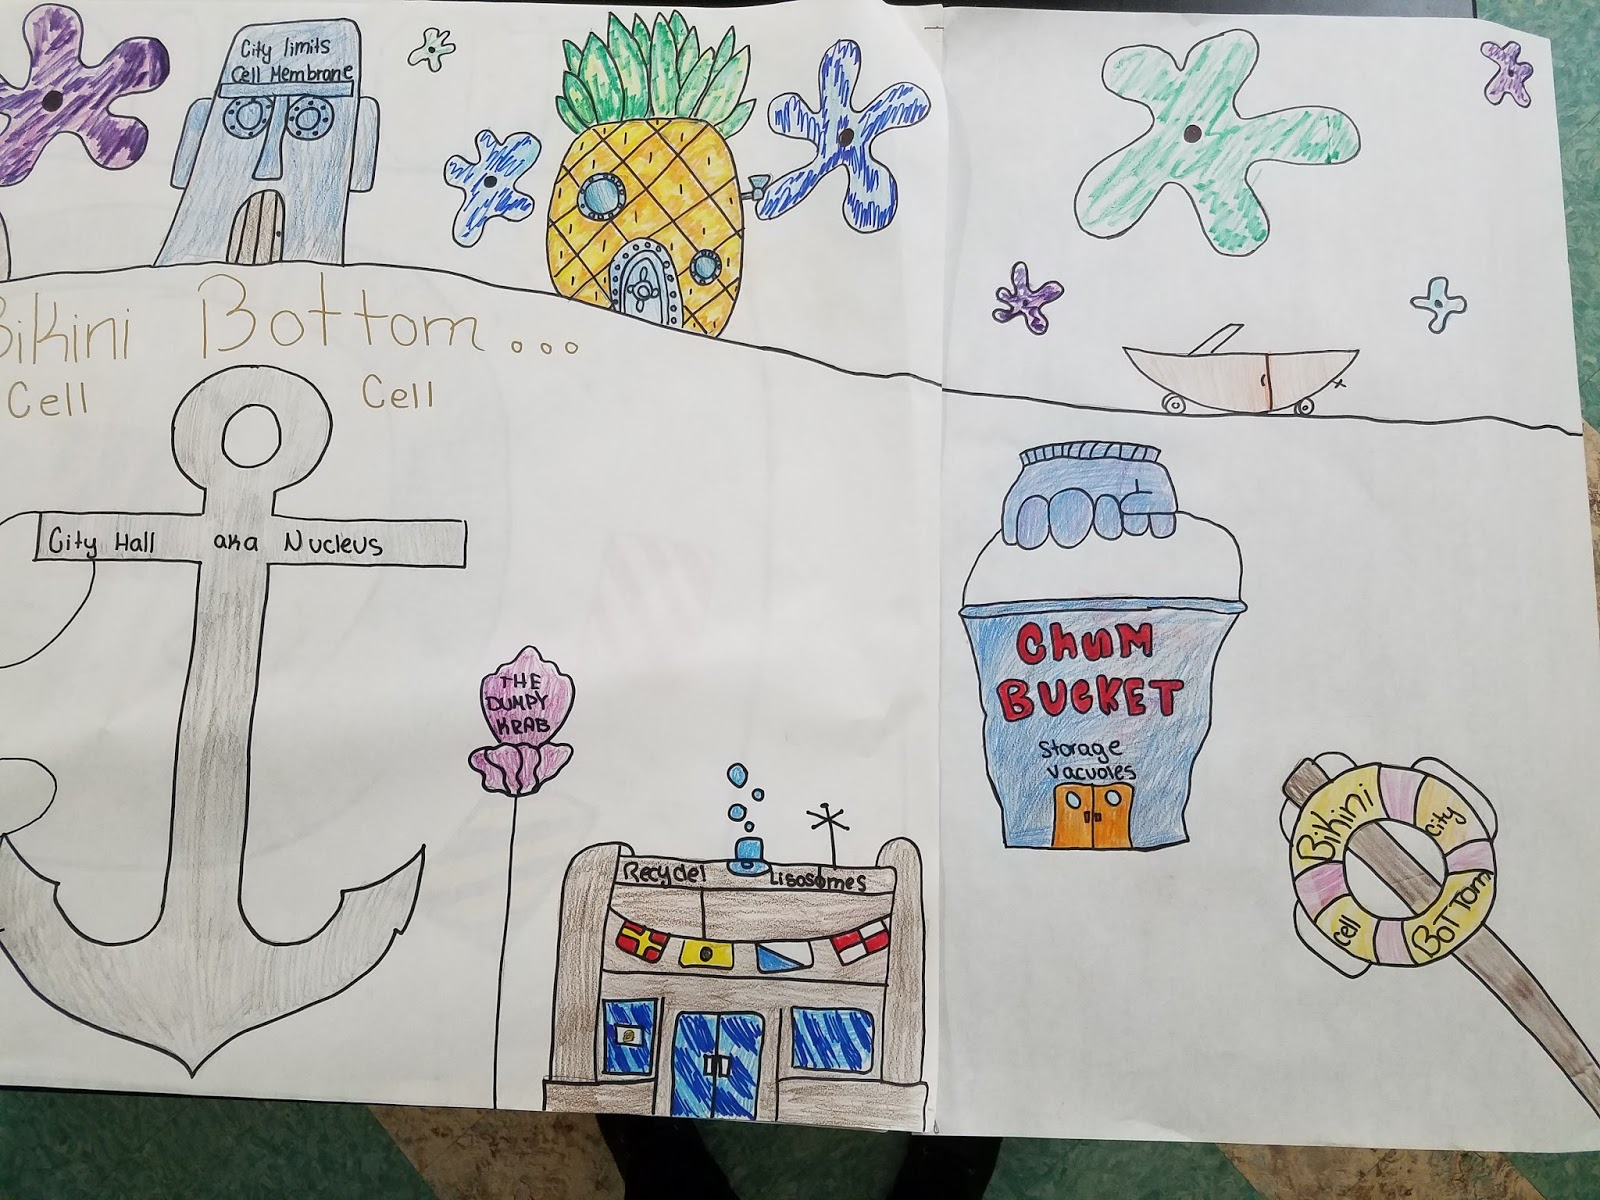 Science Time At Visitation Academy Cell Cities With The